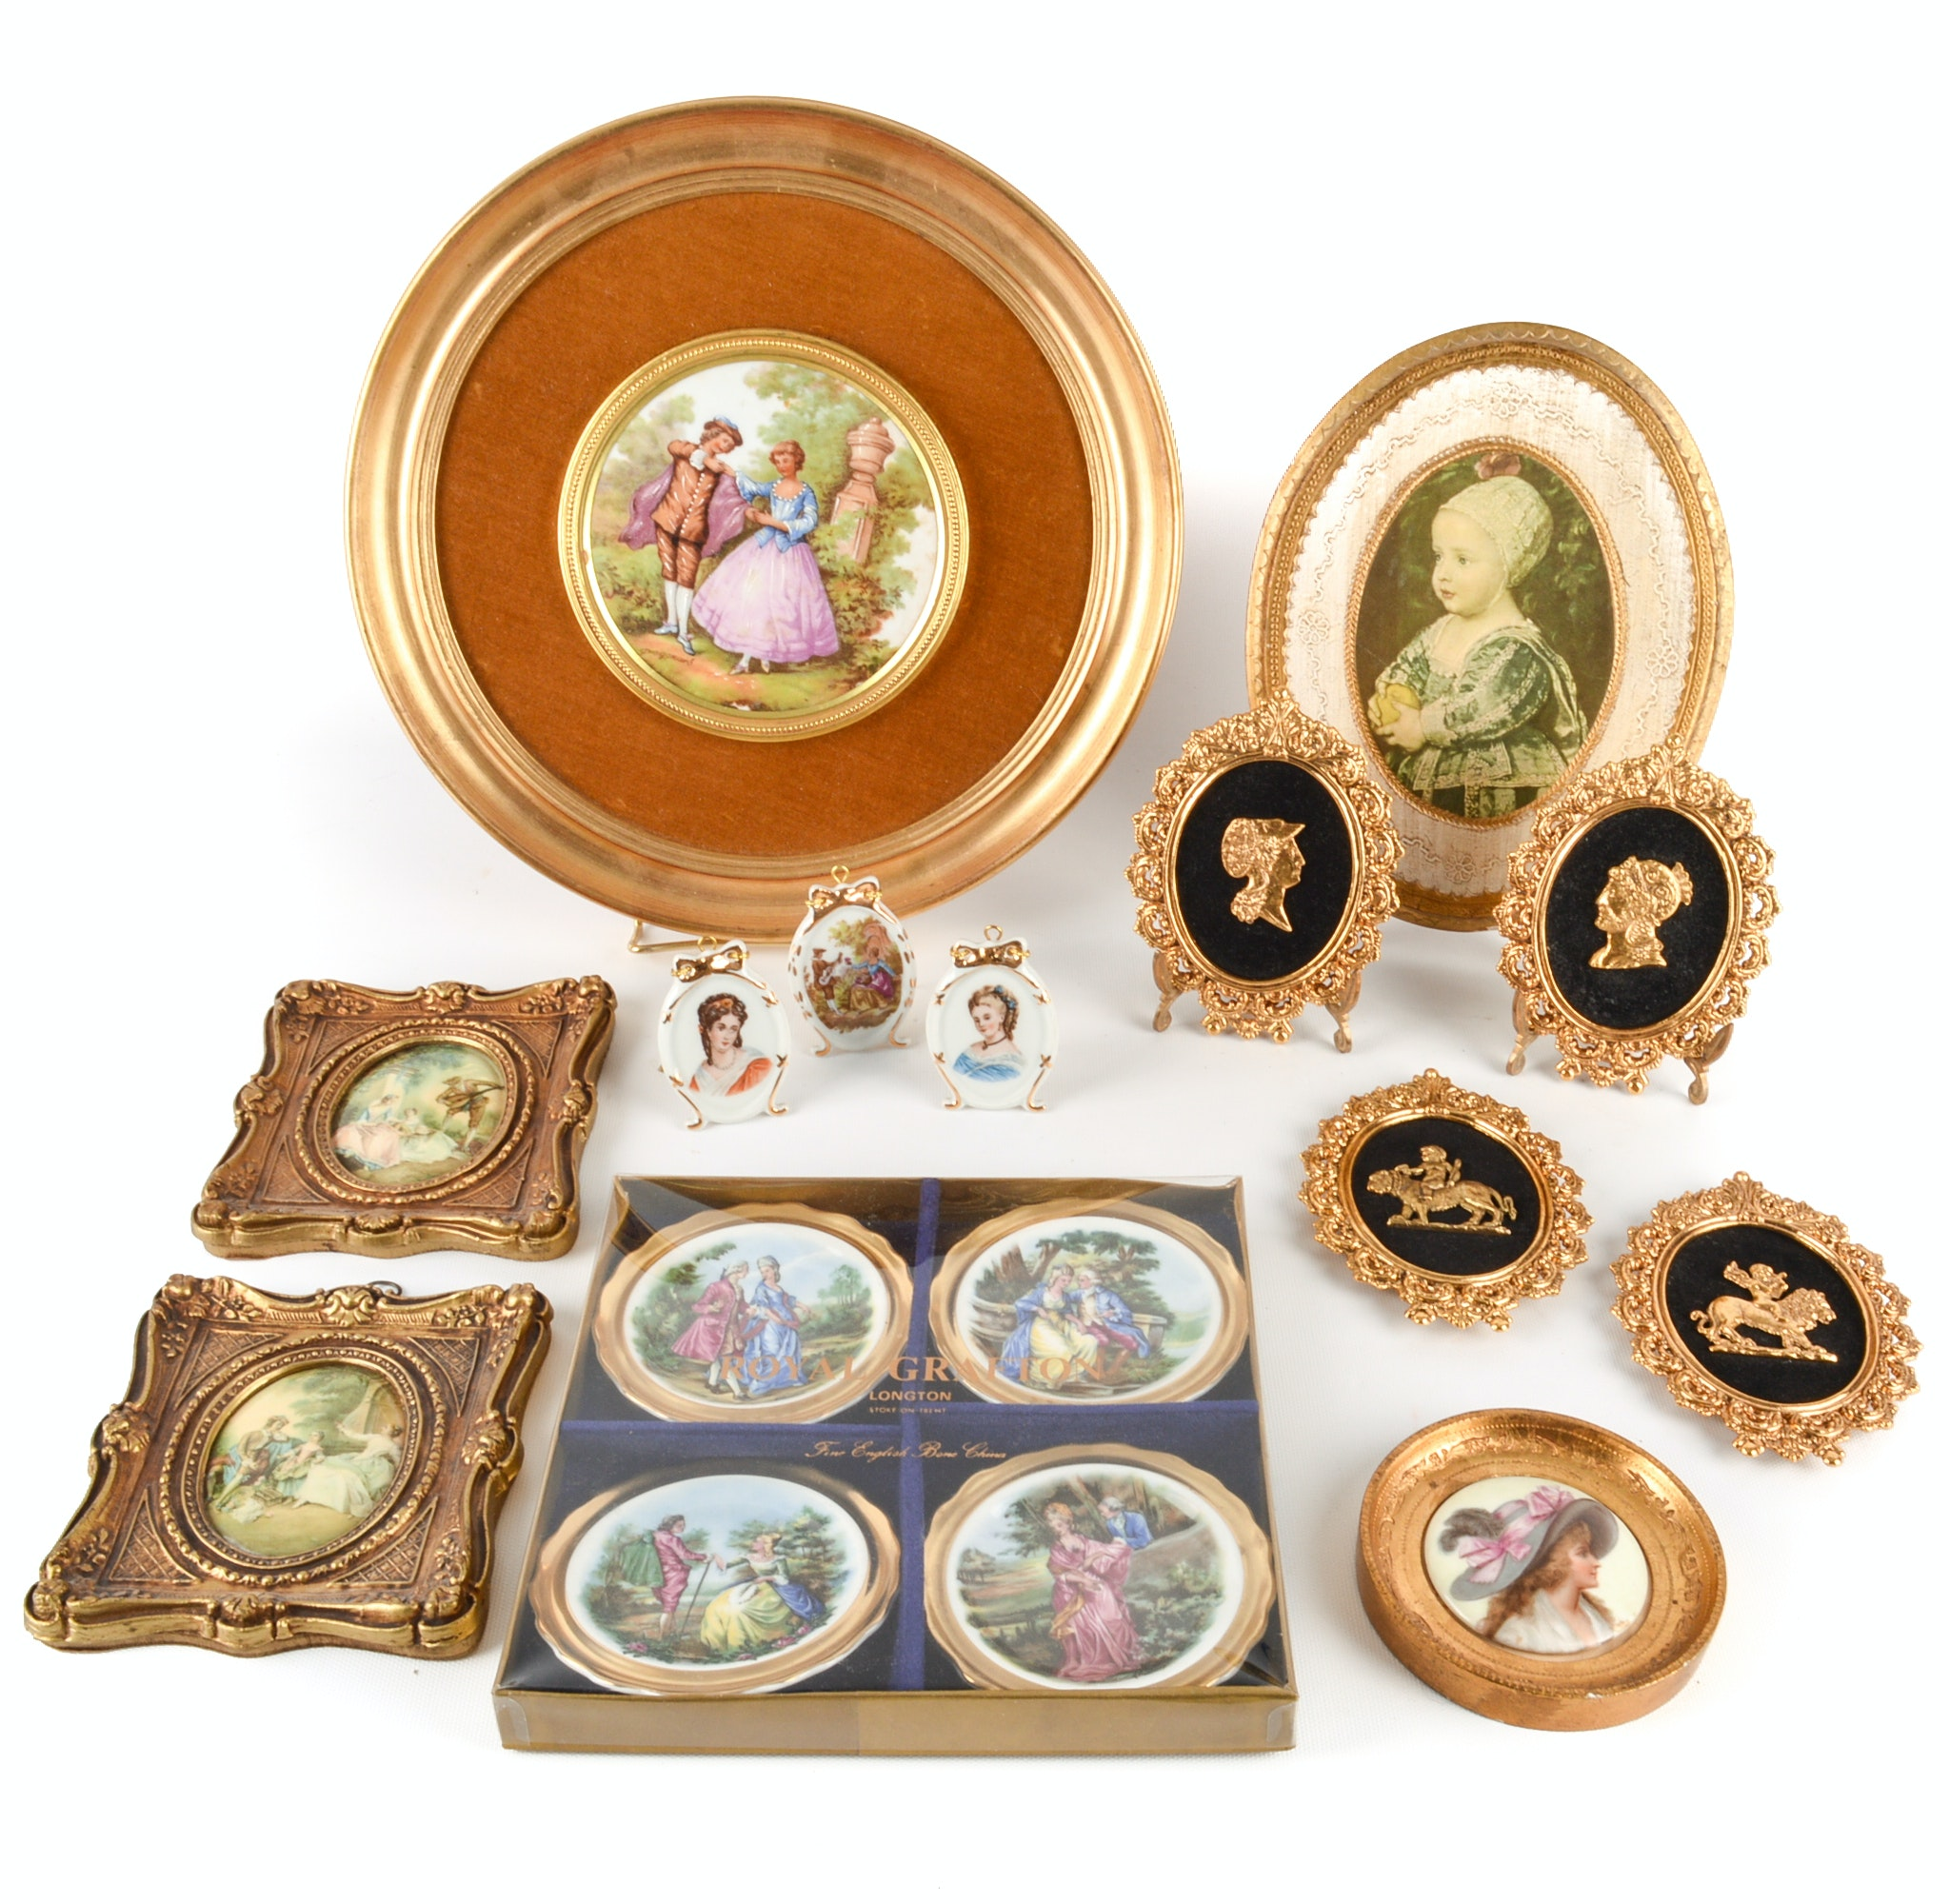 Romantic and Victorian Style Home Decor Including Limoges Porcelain